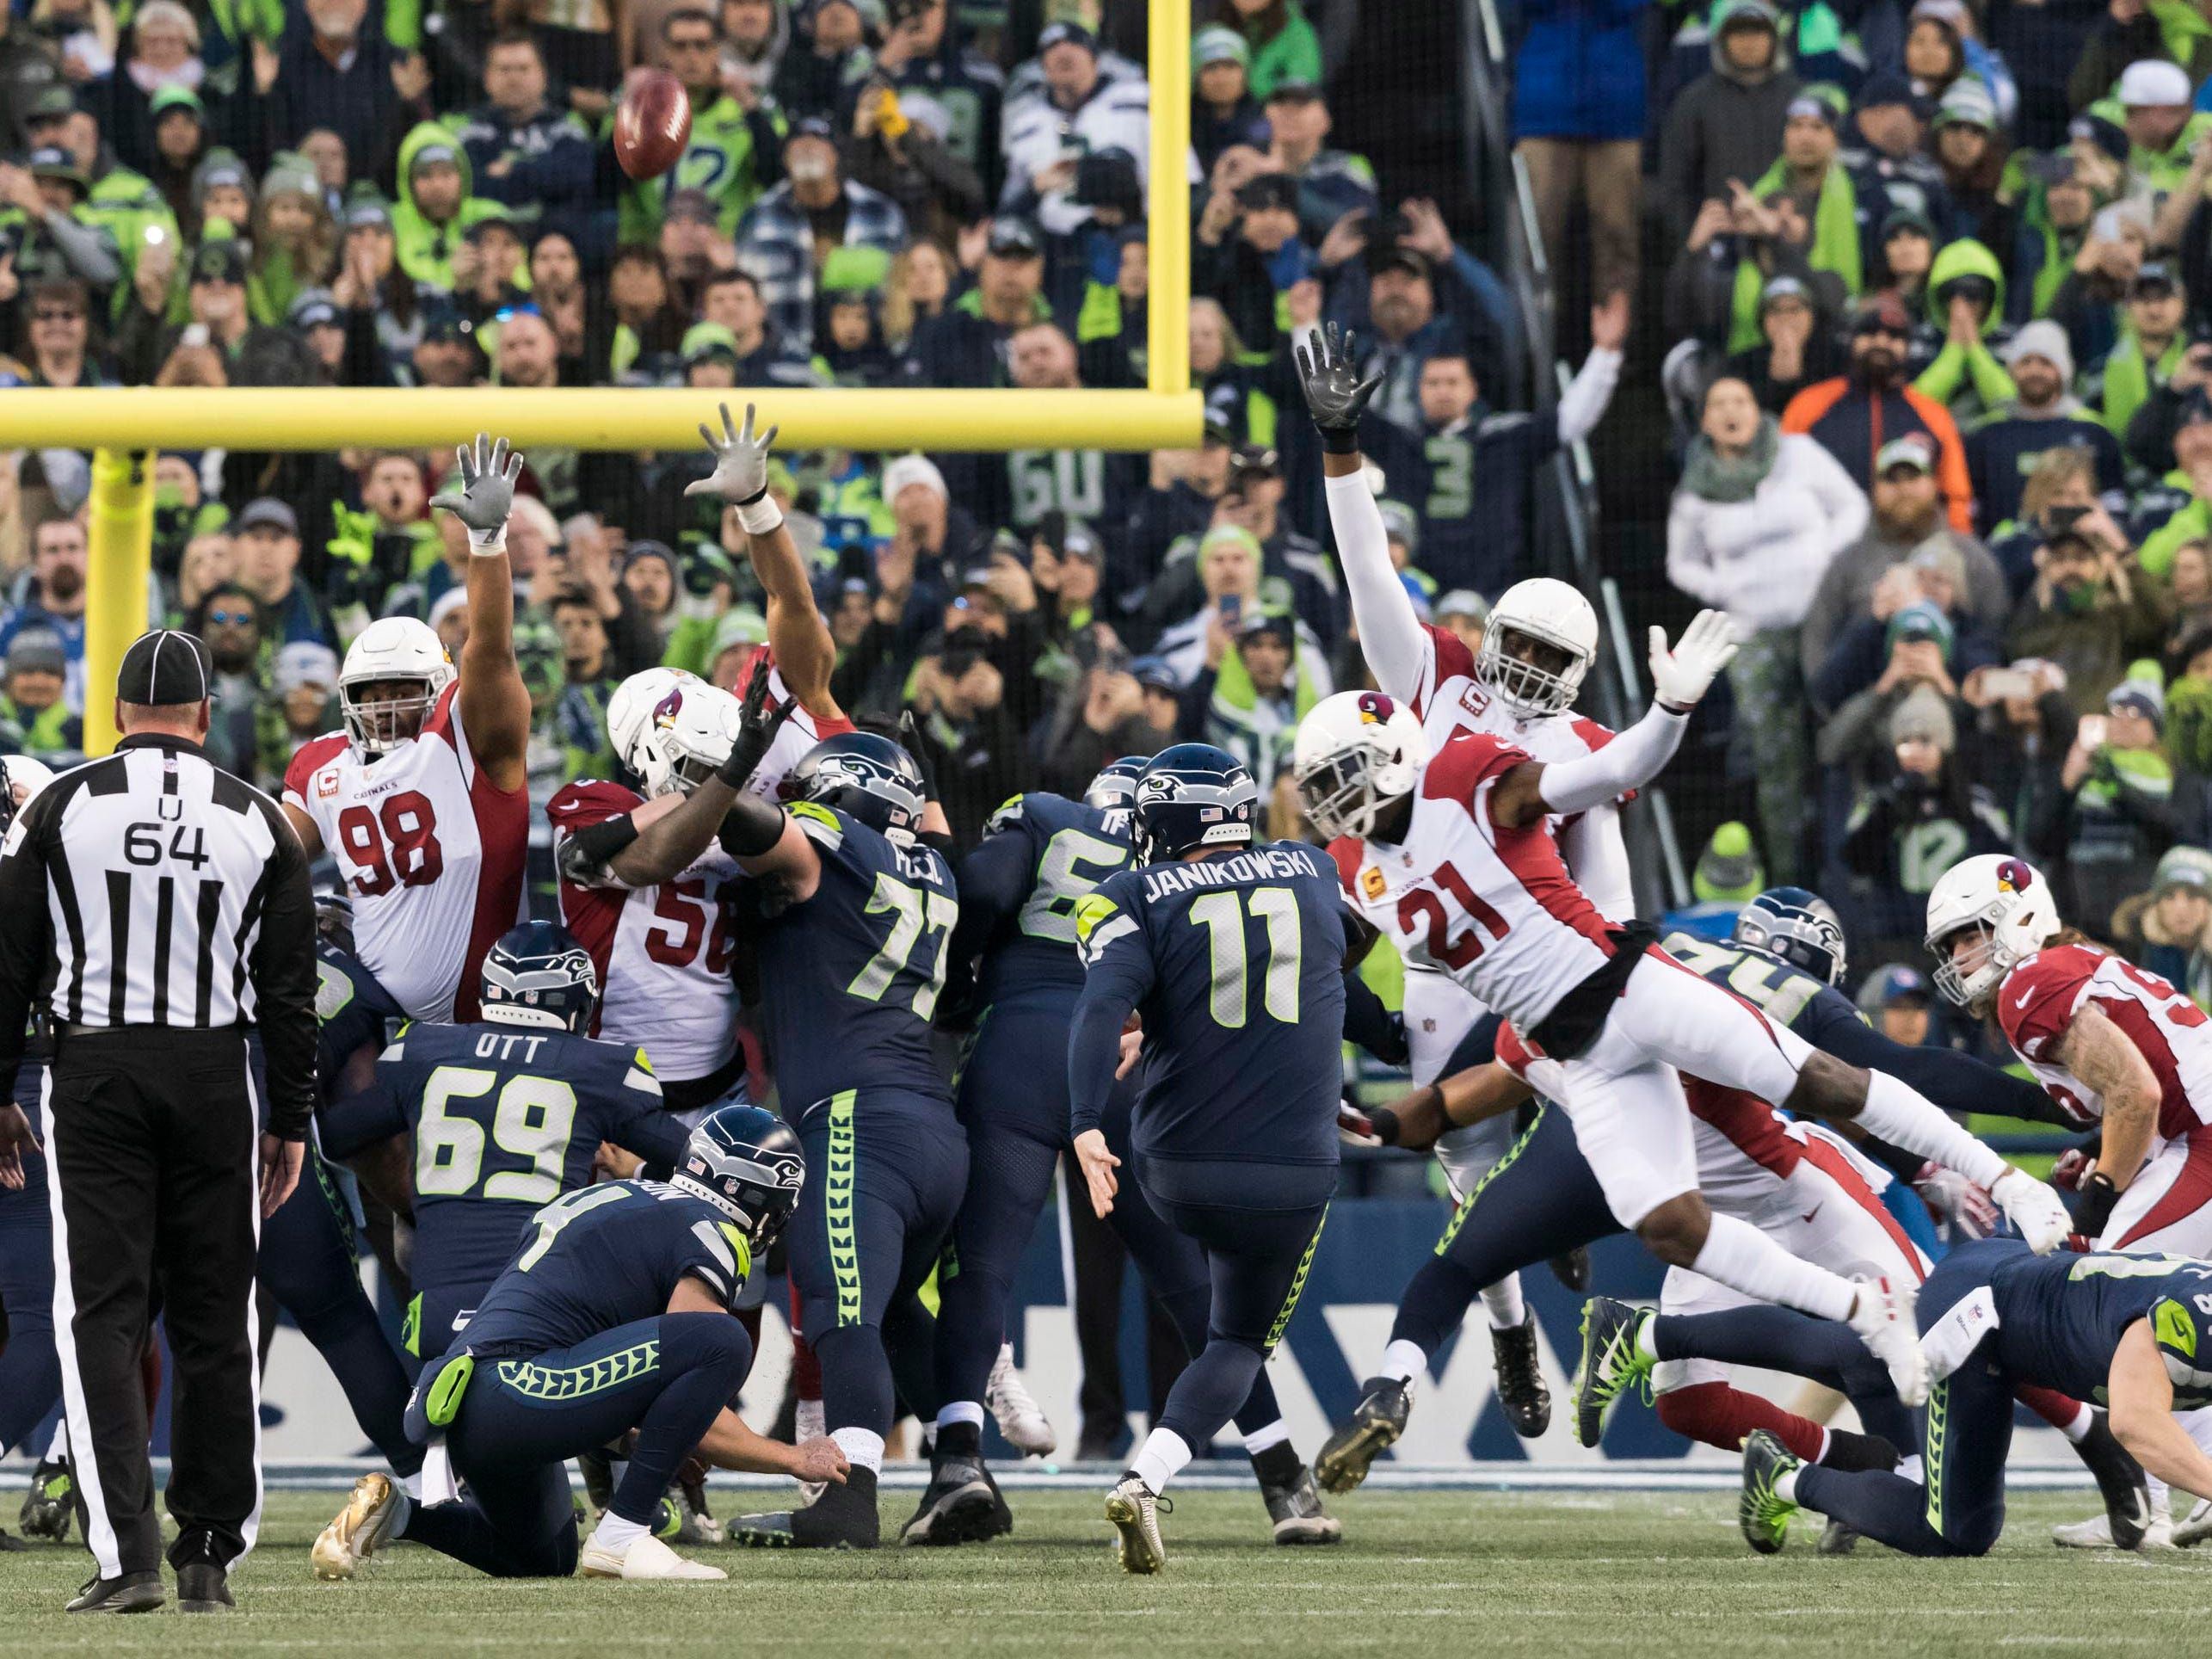 Dec 30, 2018; Seattle, WA, USA; Seattle Seahawks kicker Sebastian Janikowski (11) kicks the game winning field goal against the Arizona Cardinals during the second half at CenturyLink Field. Seattle defeated Arizona 27-24. Mandatory Credit: Steven Bisig-USA TODAY Sports